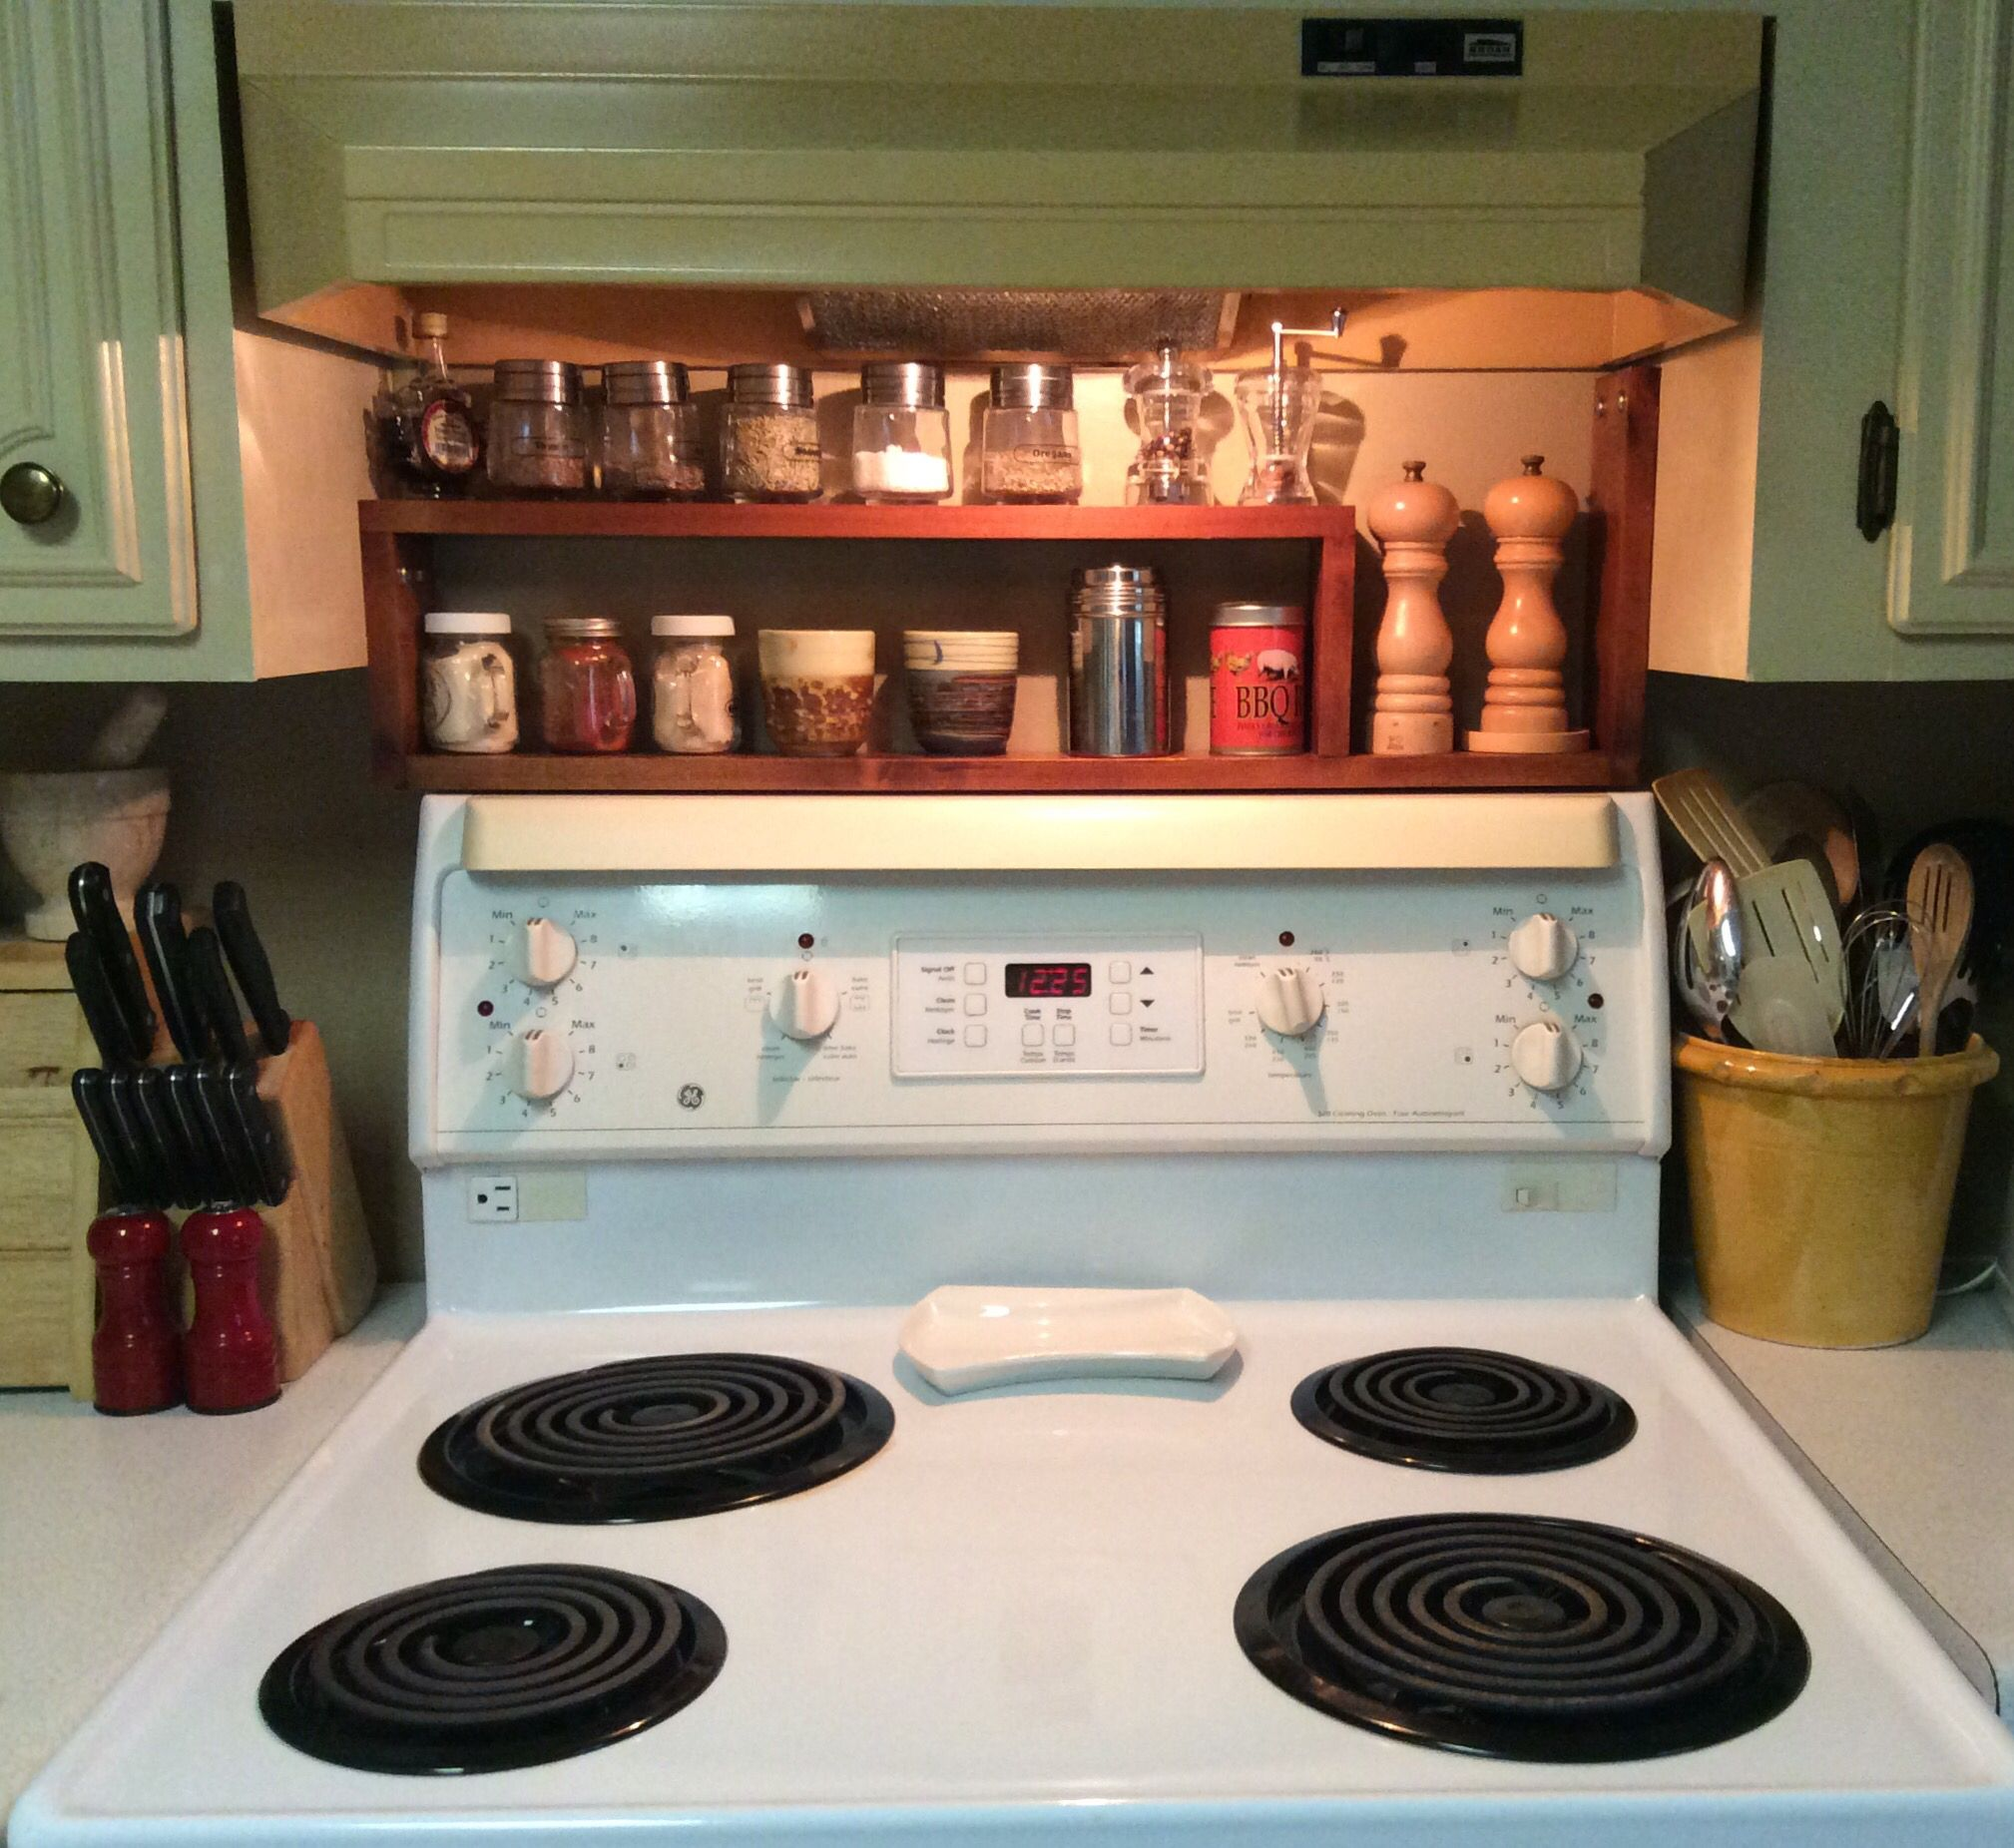 Diy Above Stove Spice Rack Made Of 1 X4 Spruce Fits Between The Cabinets And Is Hung With 2 Stainle Diy Kitchen Storage Diy Spice Rack Spice Rack Over Stove